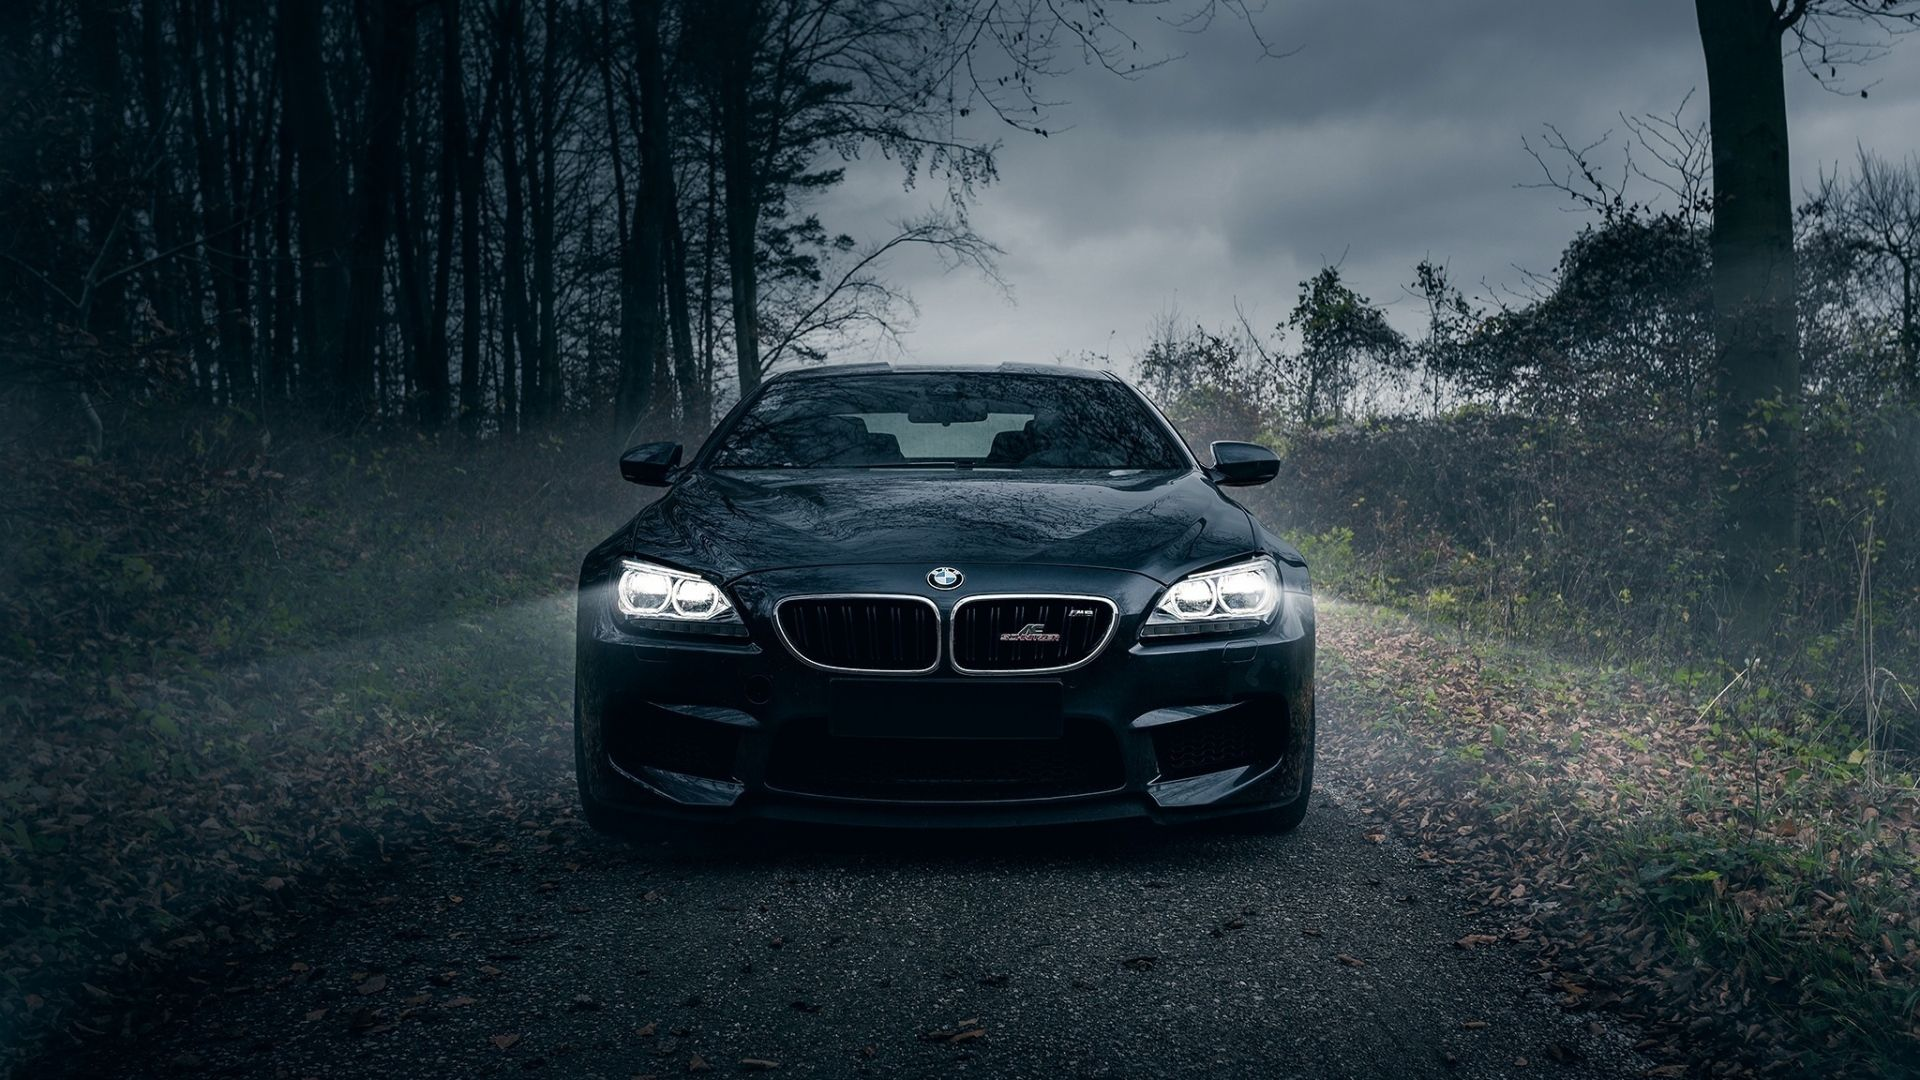 Full HD BMW Wallpapers - Top Free Full ...